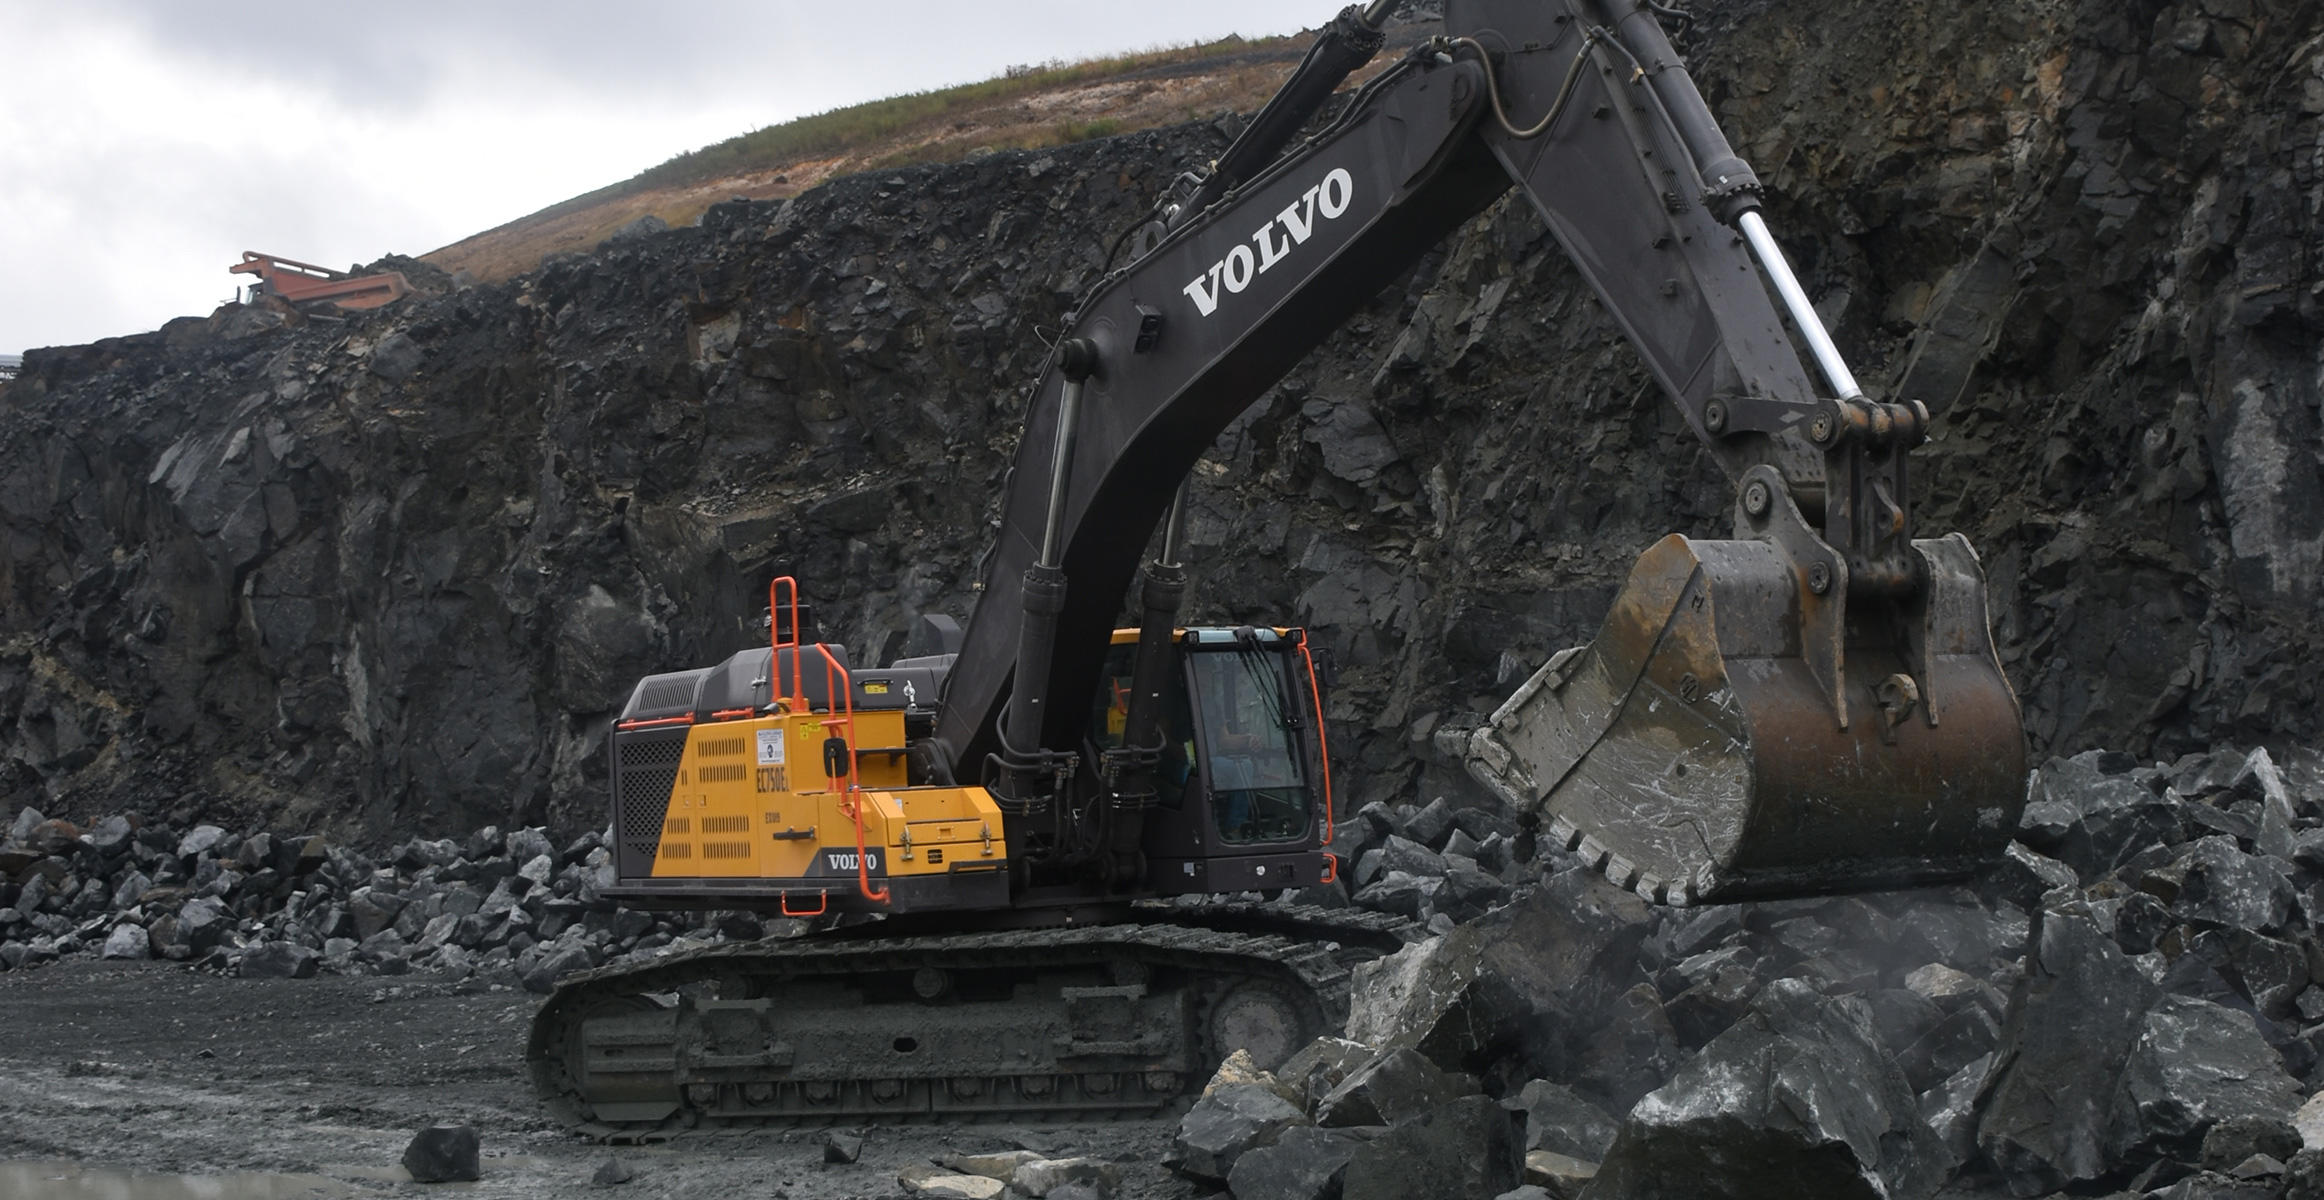 Volvo Excavator at Savage Stone in Jessup, Maryland